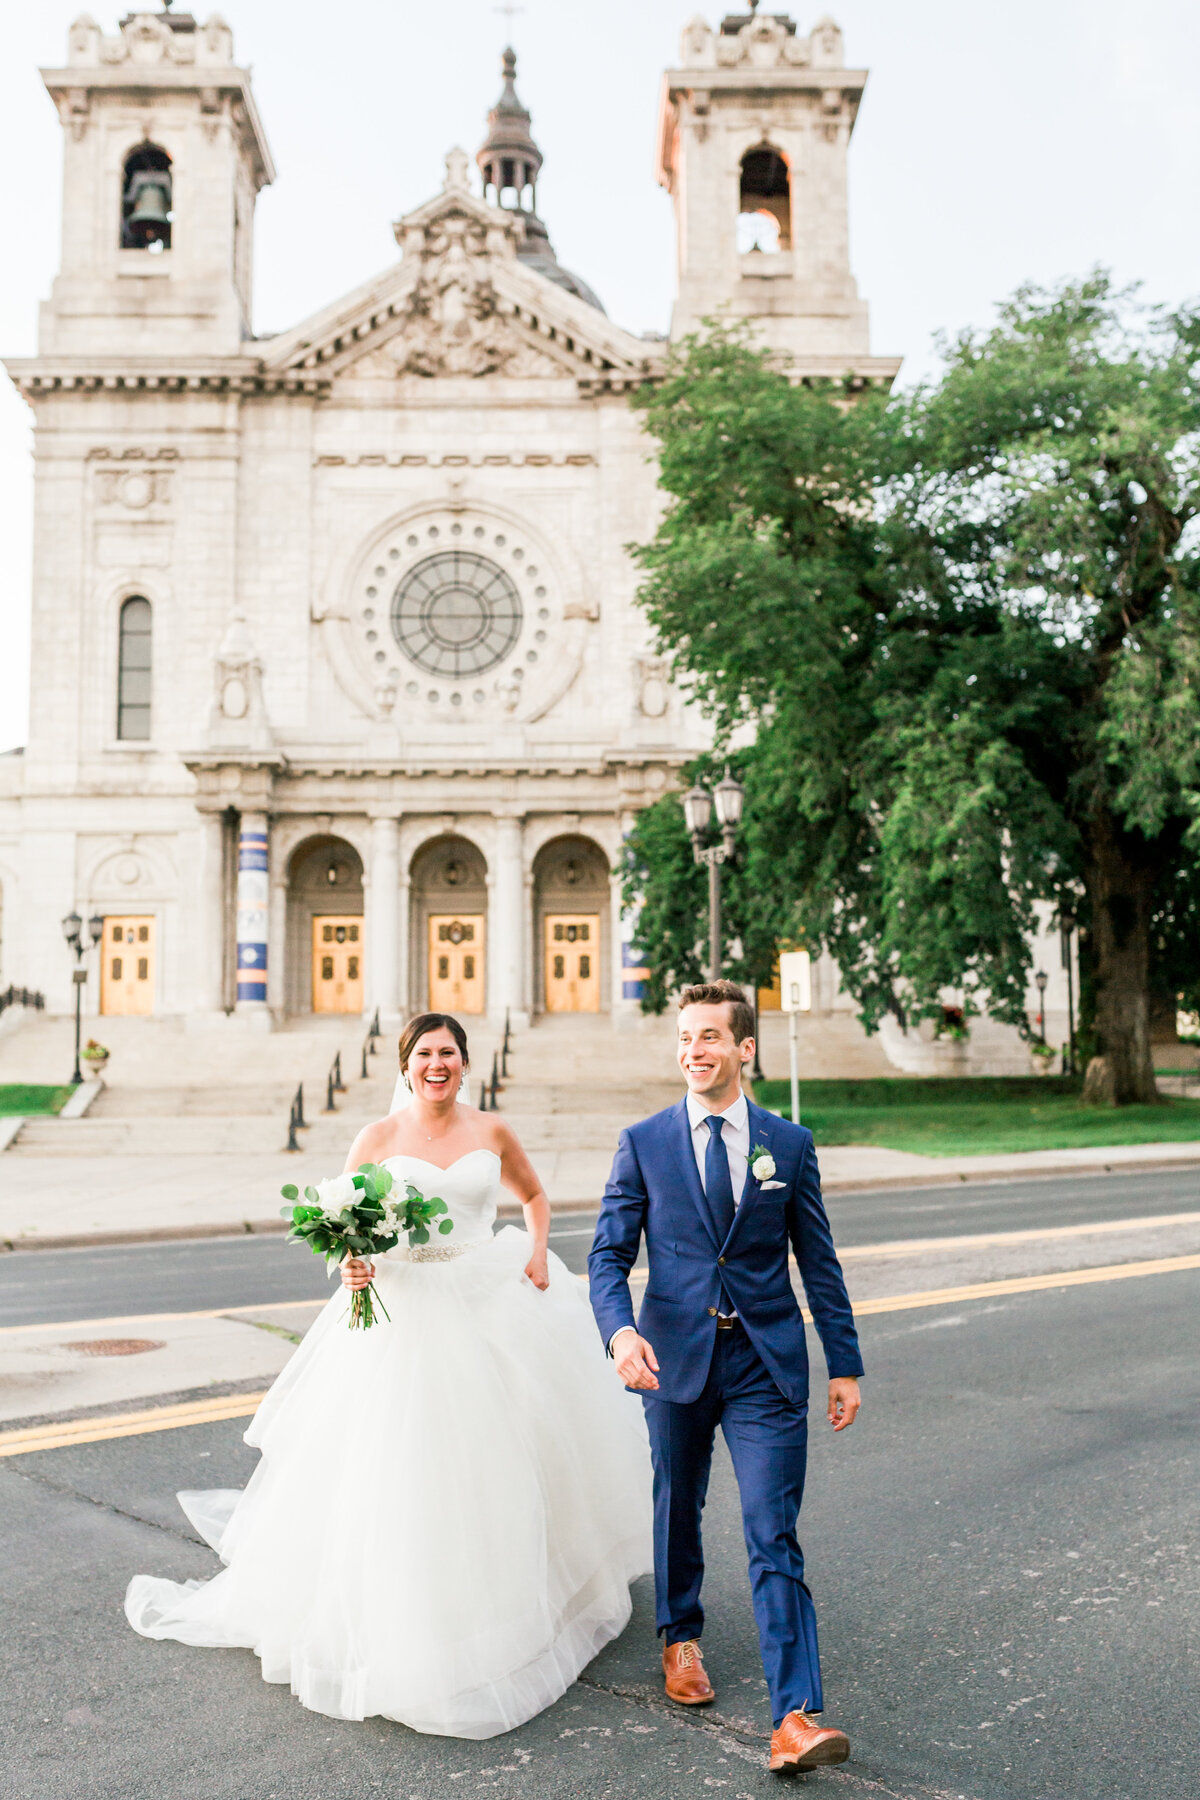 lindsey-taylor-photography-minneapolis-st-peters-basilica-wedding-photographer37